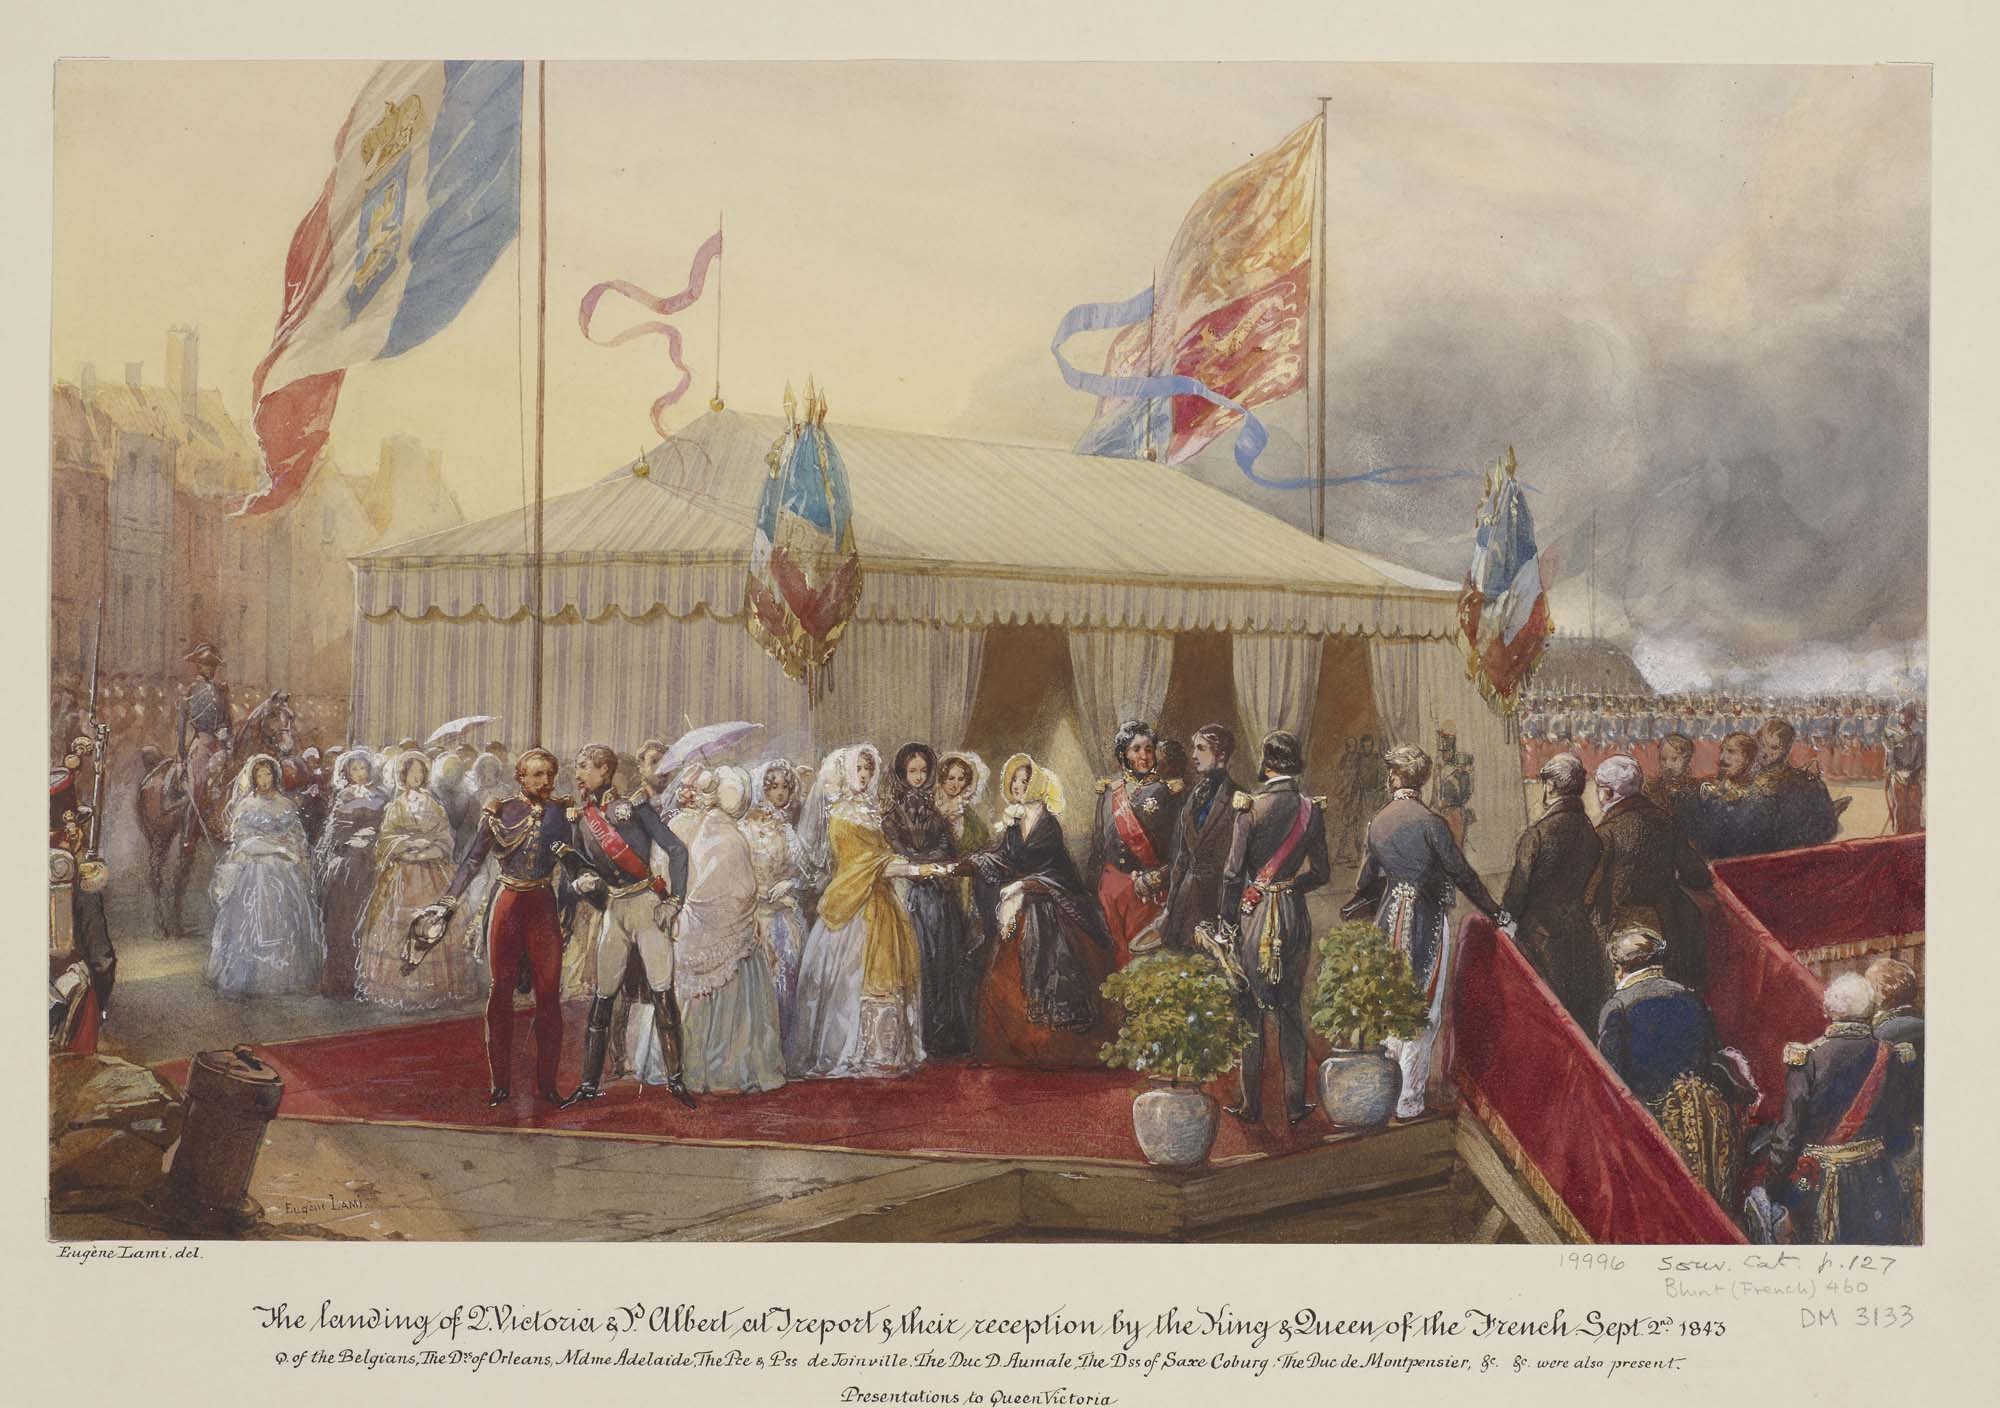 a watercolour of dignitaries greeting each other on a red carpet next to flags and a large marquee